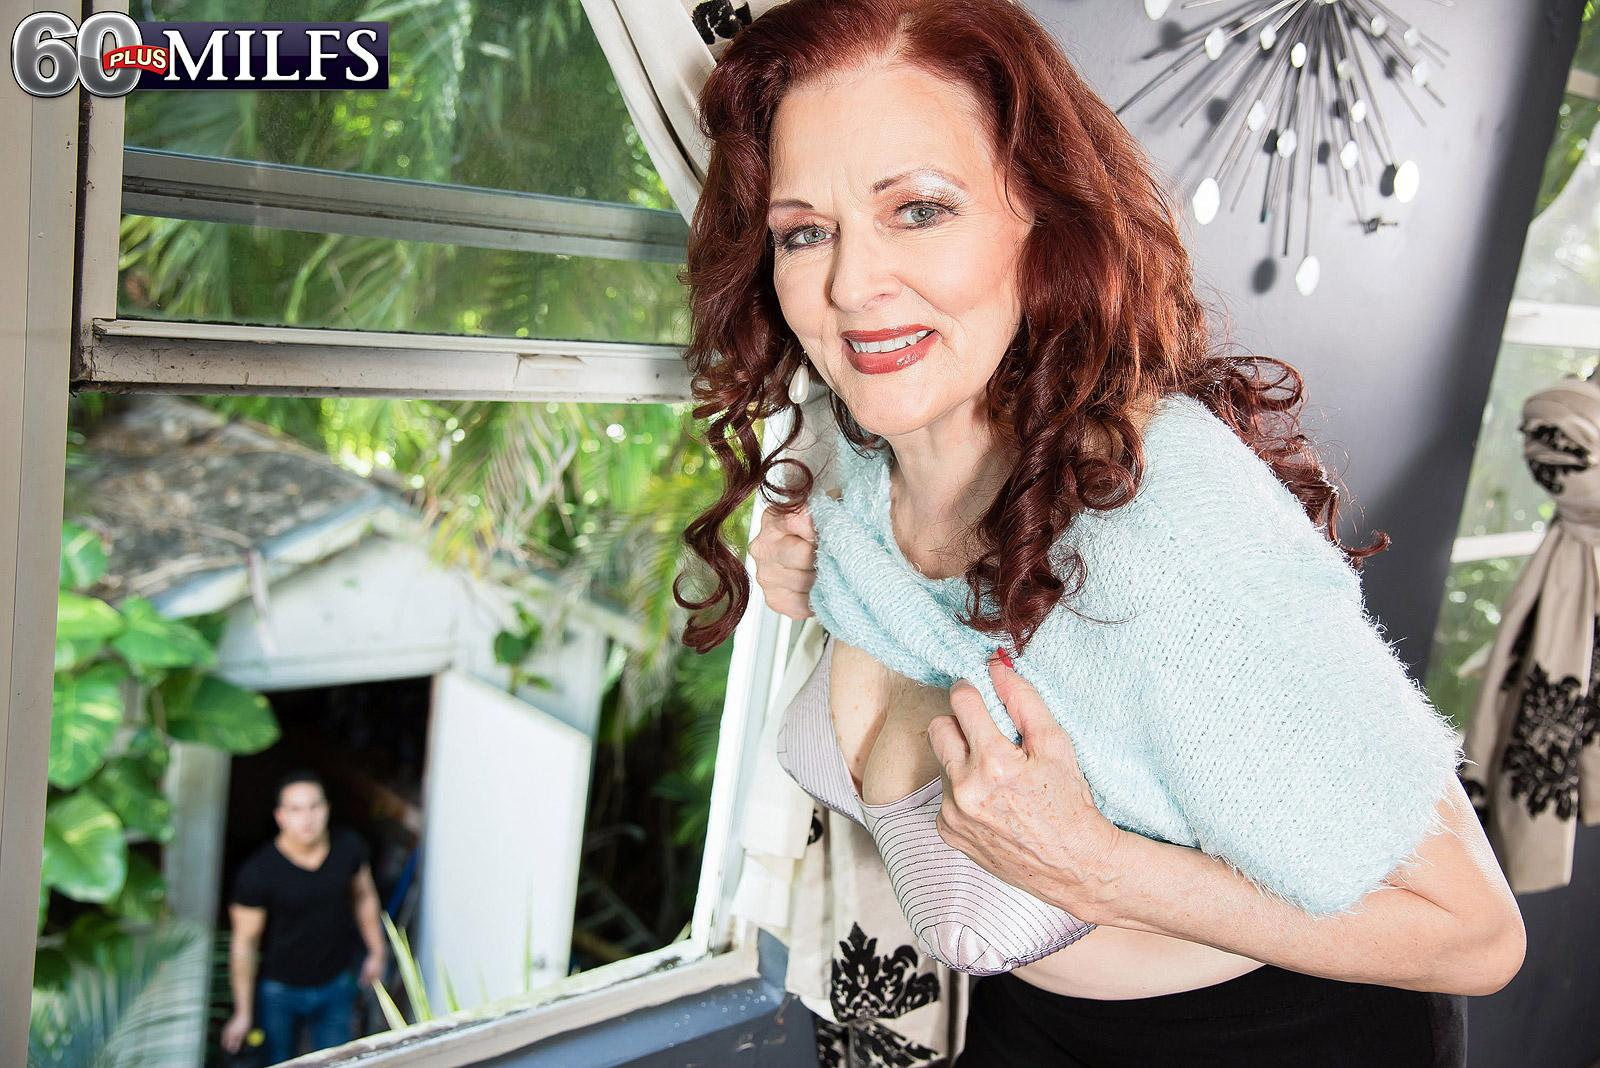 Red-haired MILF over 60 Katherine Merlot pulling out giant saggy titties for nipple play